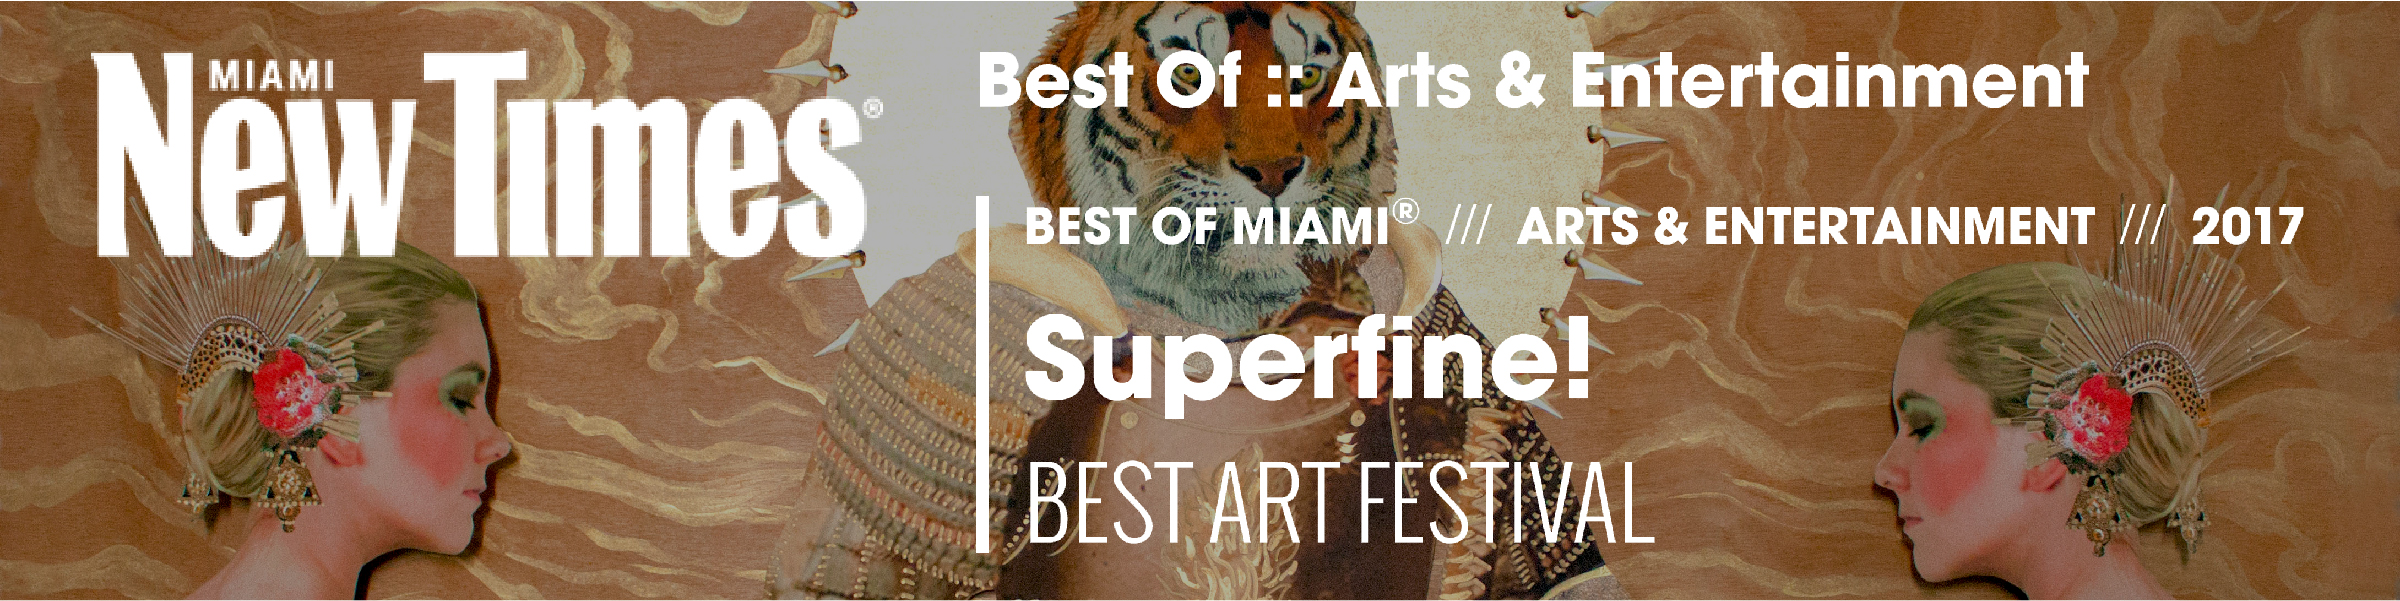 """Art Basel and Miami Art Week, at heart, are a rich person's playground, full of white tents housing bajillion-dollar works of art... But then Superfine! hit the scene.""  - Miami New Times, 6.13.17"